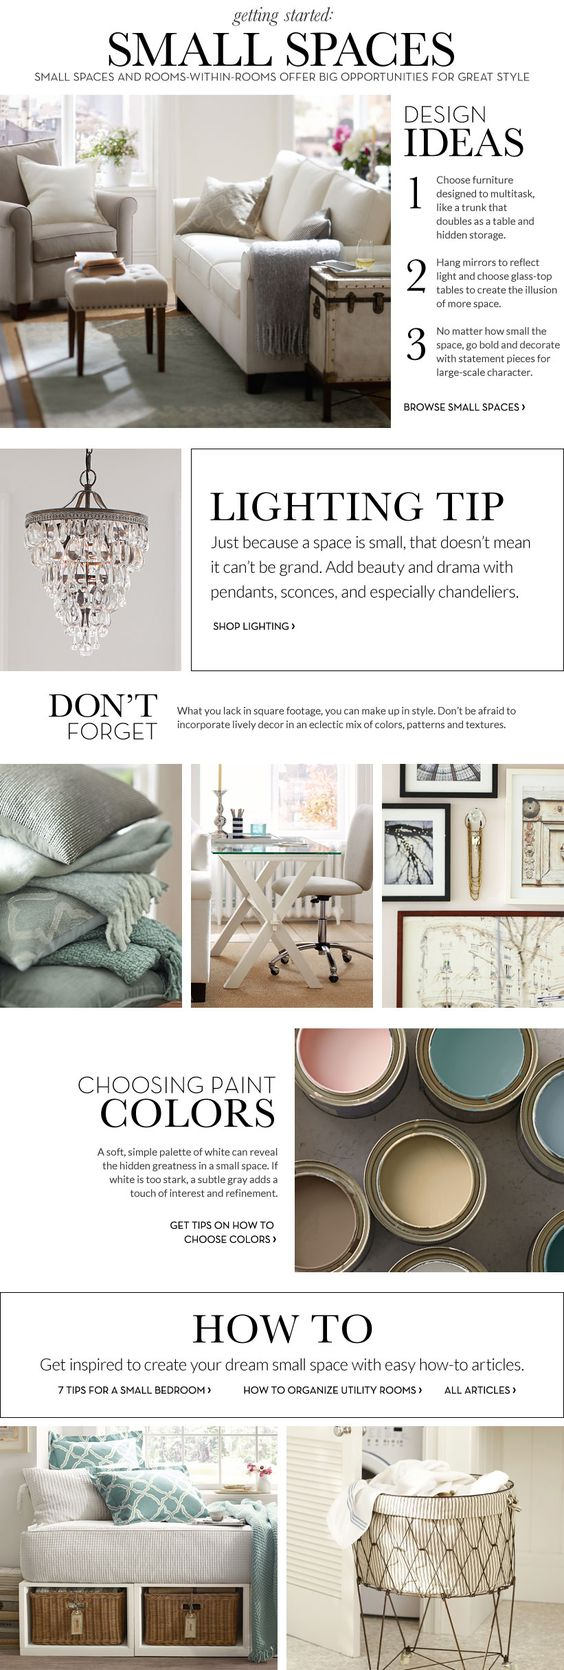 small spaces inspiration how to decorate small spaces